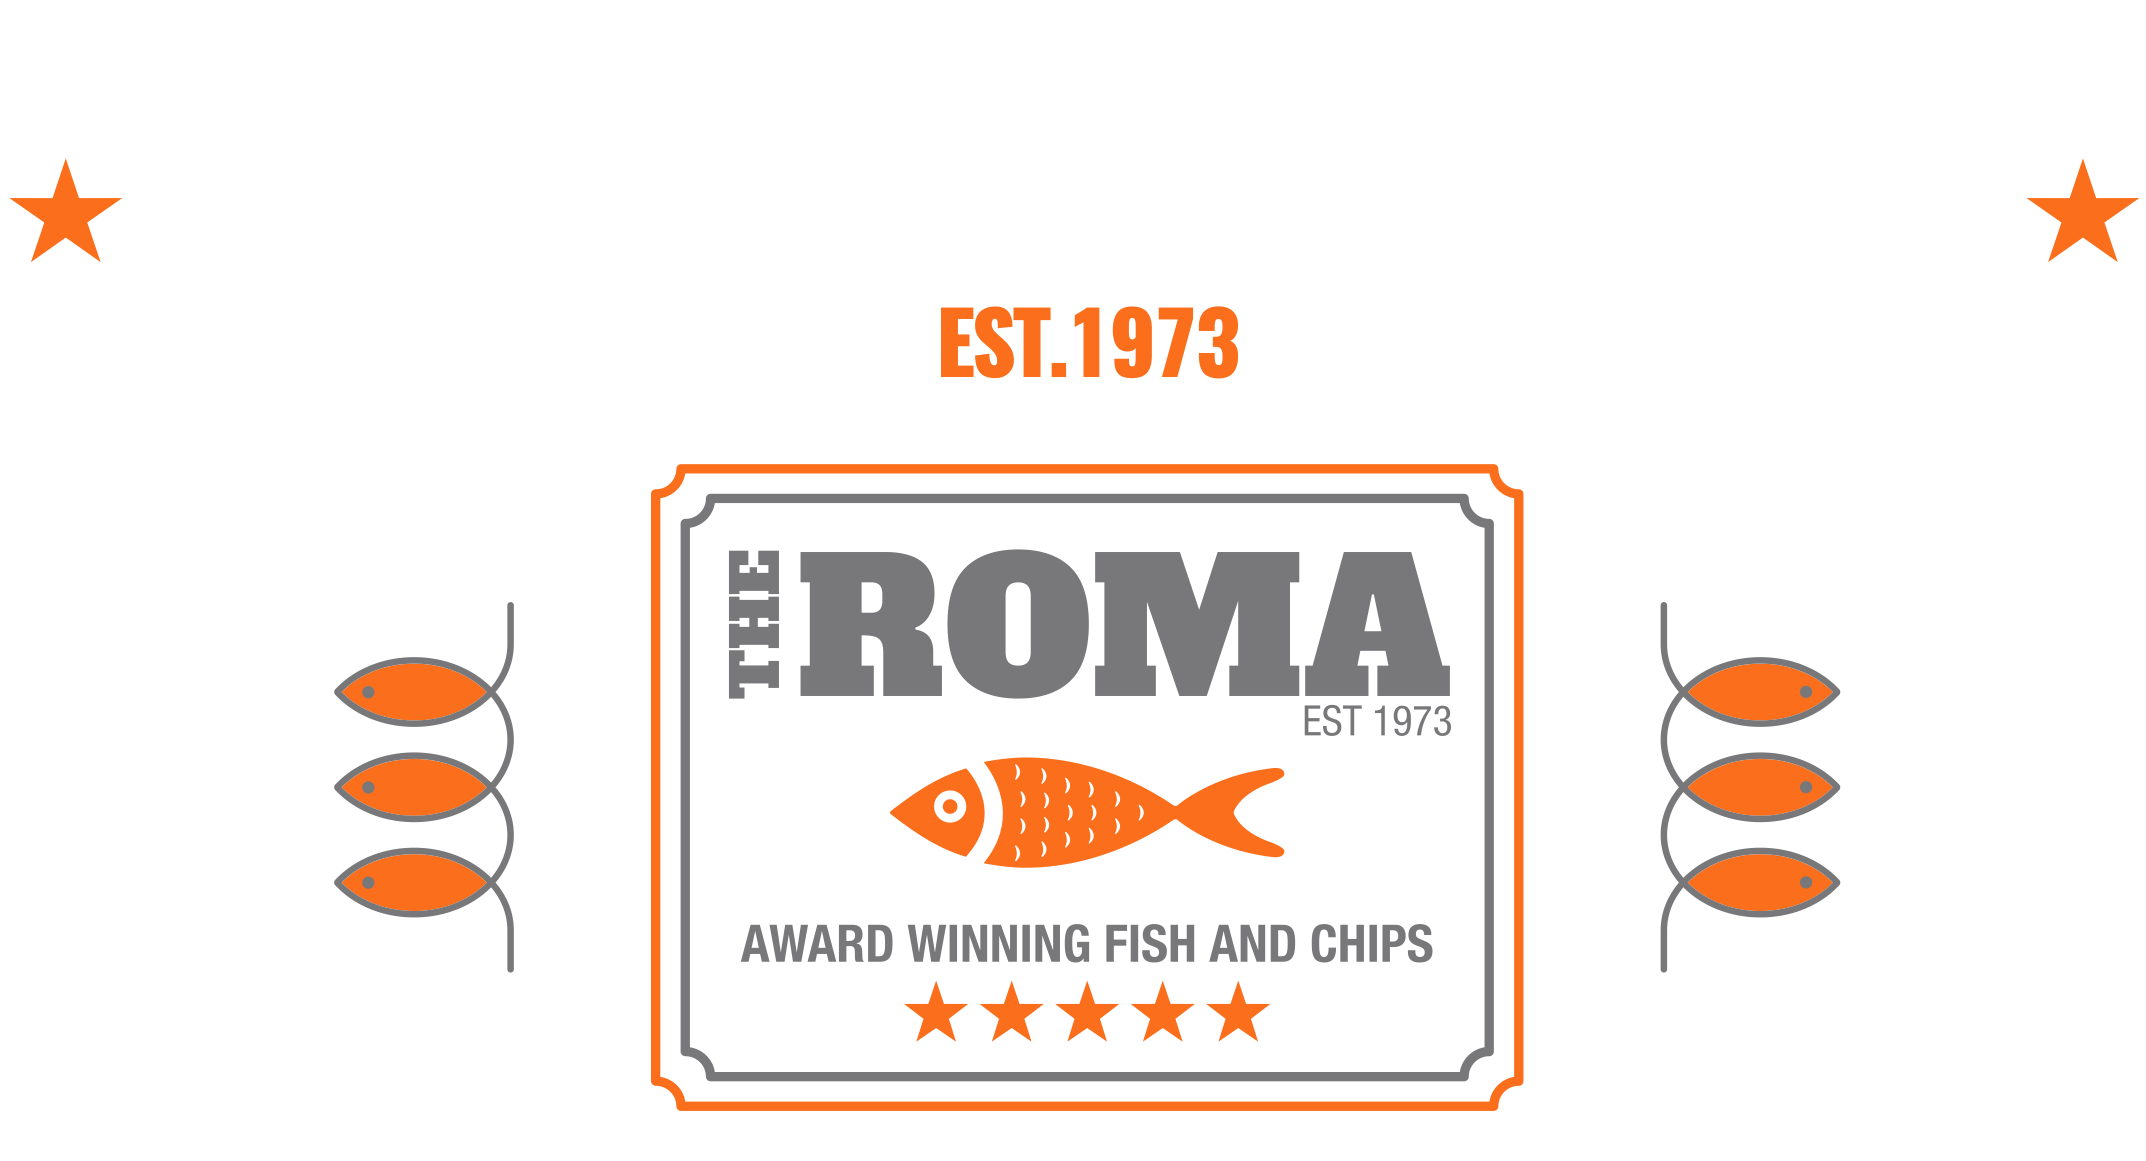 The Roma Fish Bar. Award Winning Fish and Chips in Swansea.